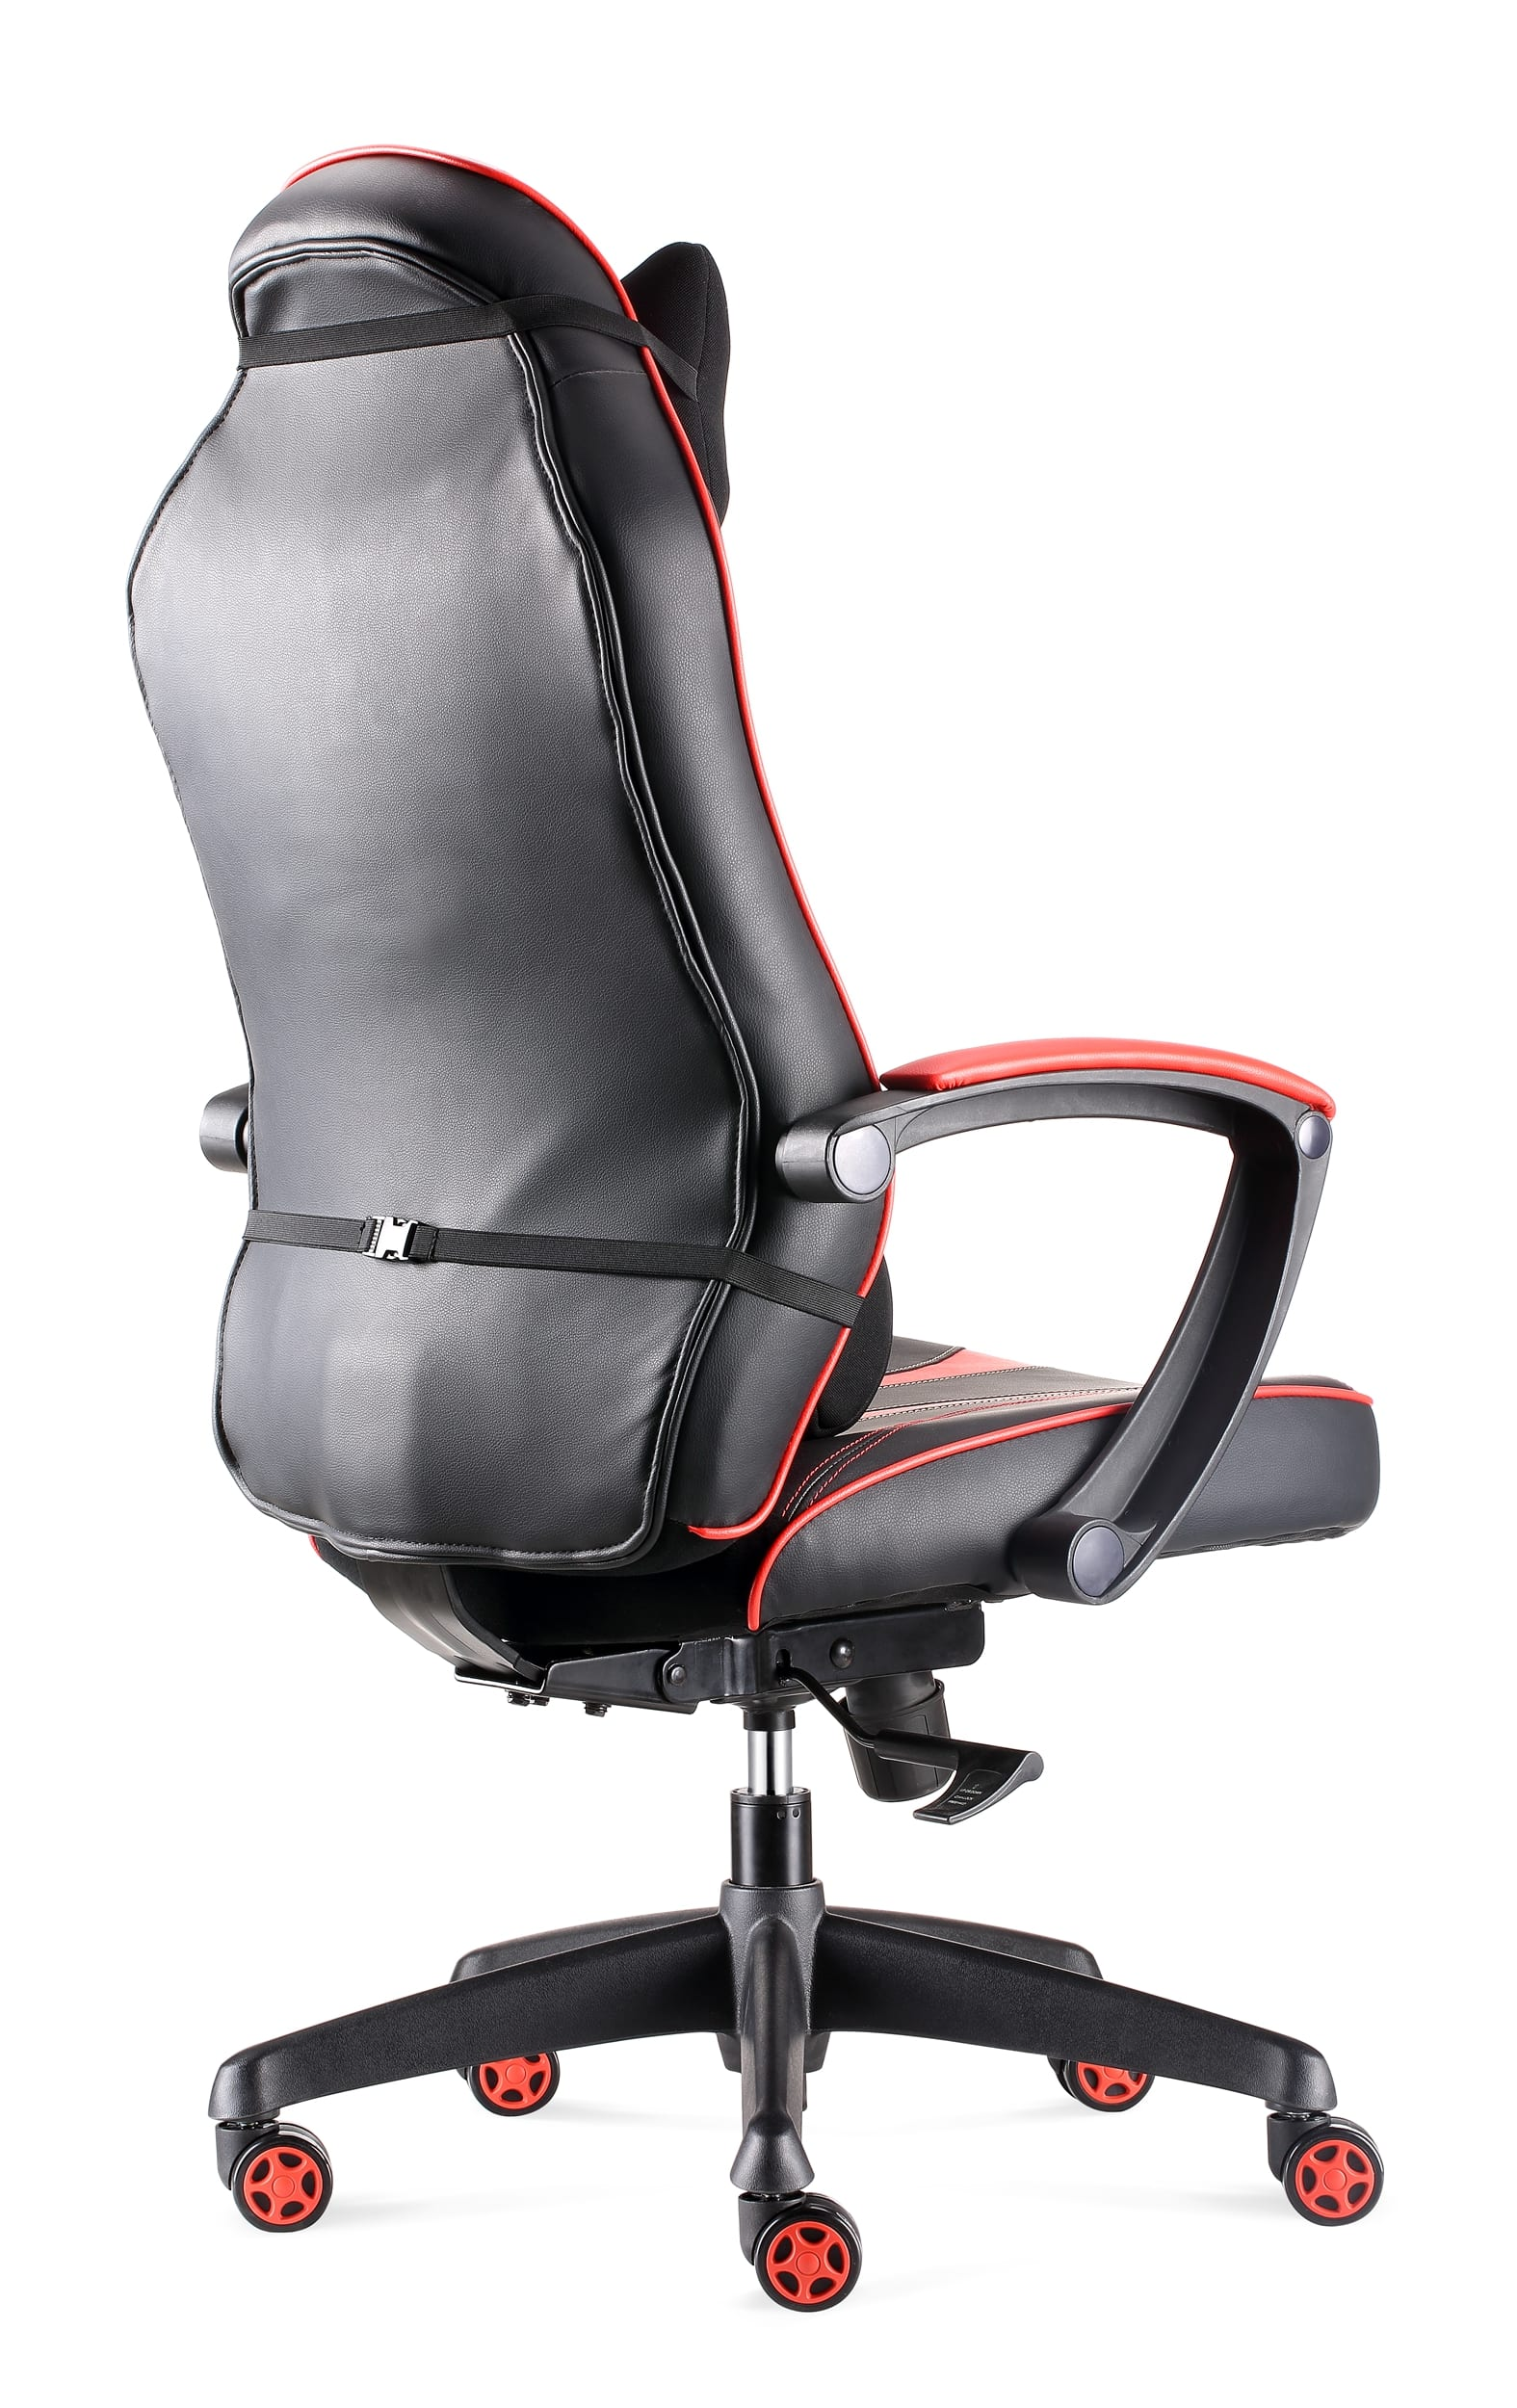 Redragon Metis Gaming Chair Black Red Syntech